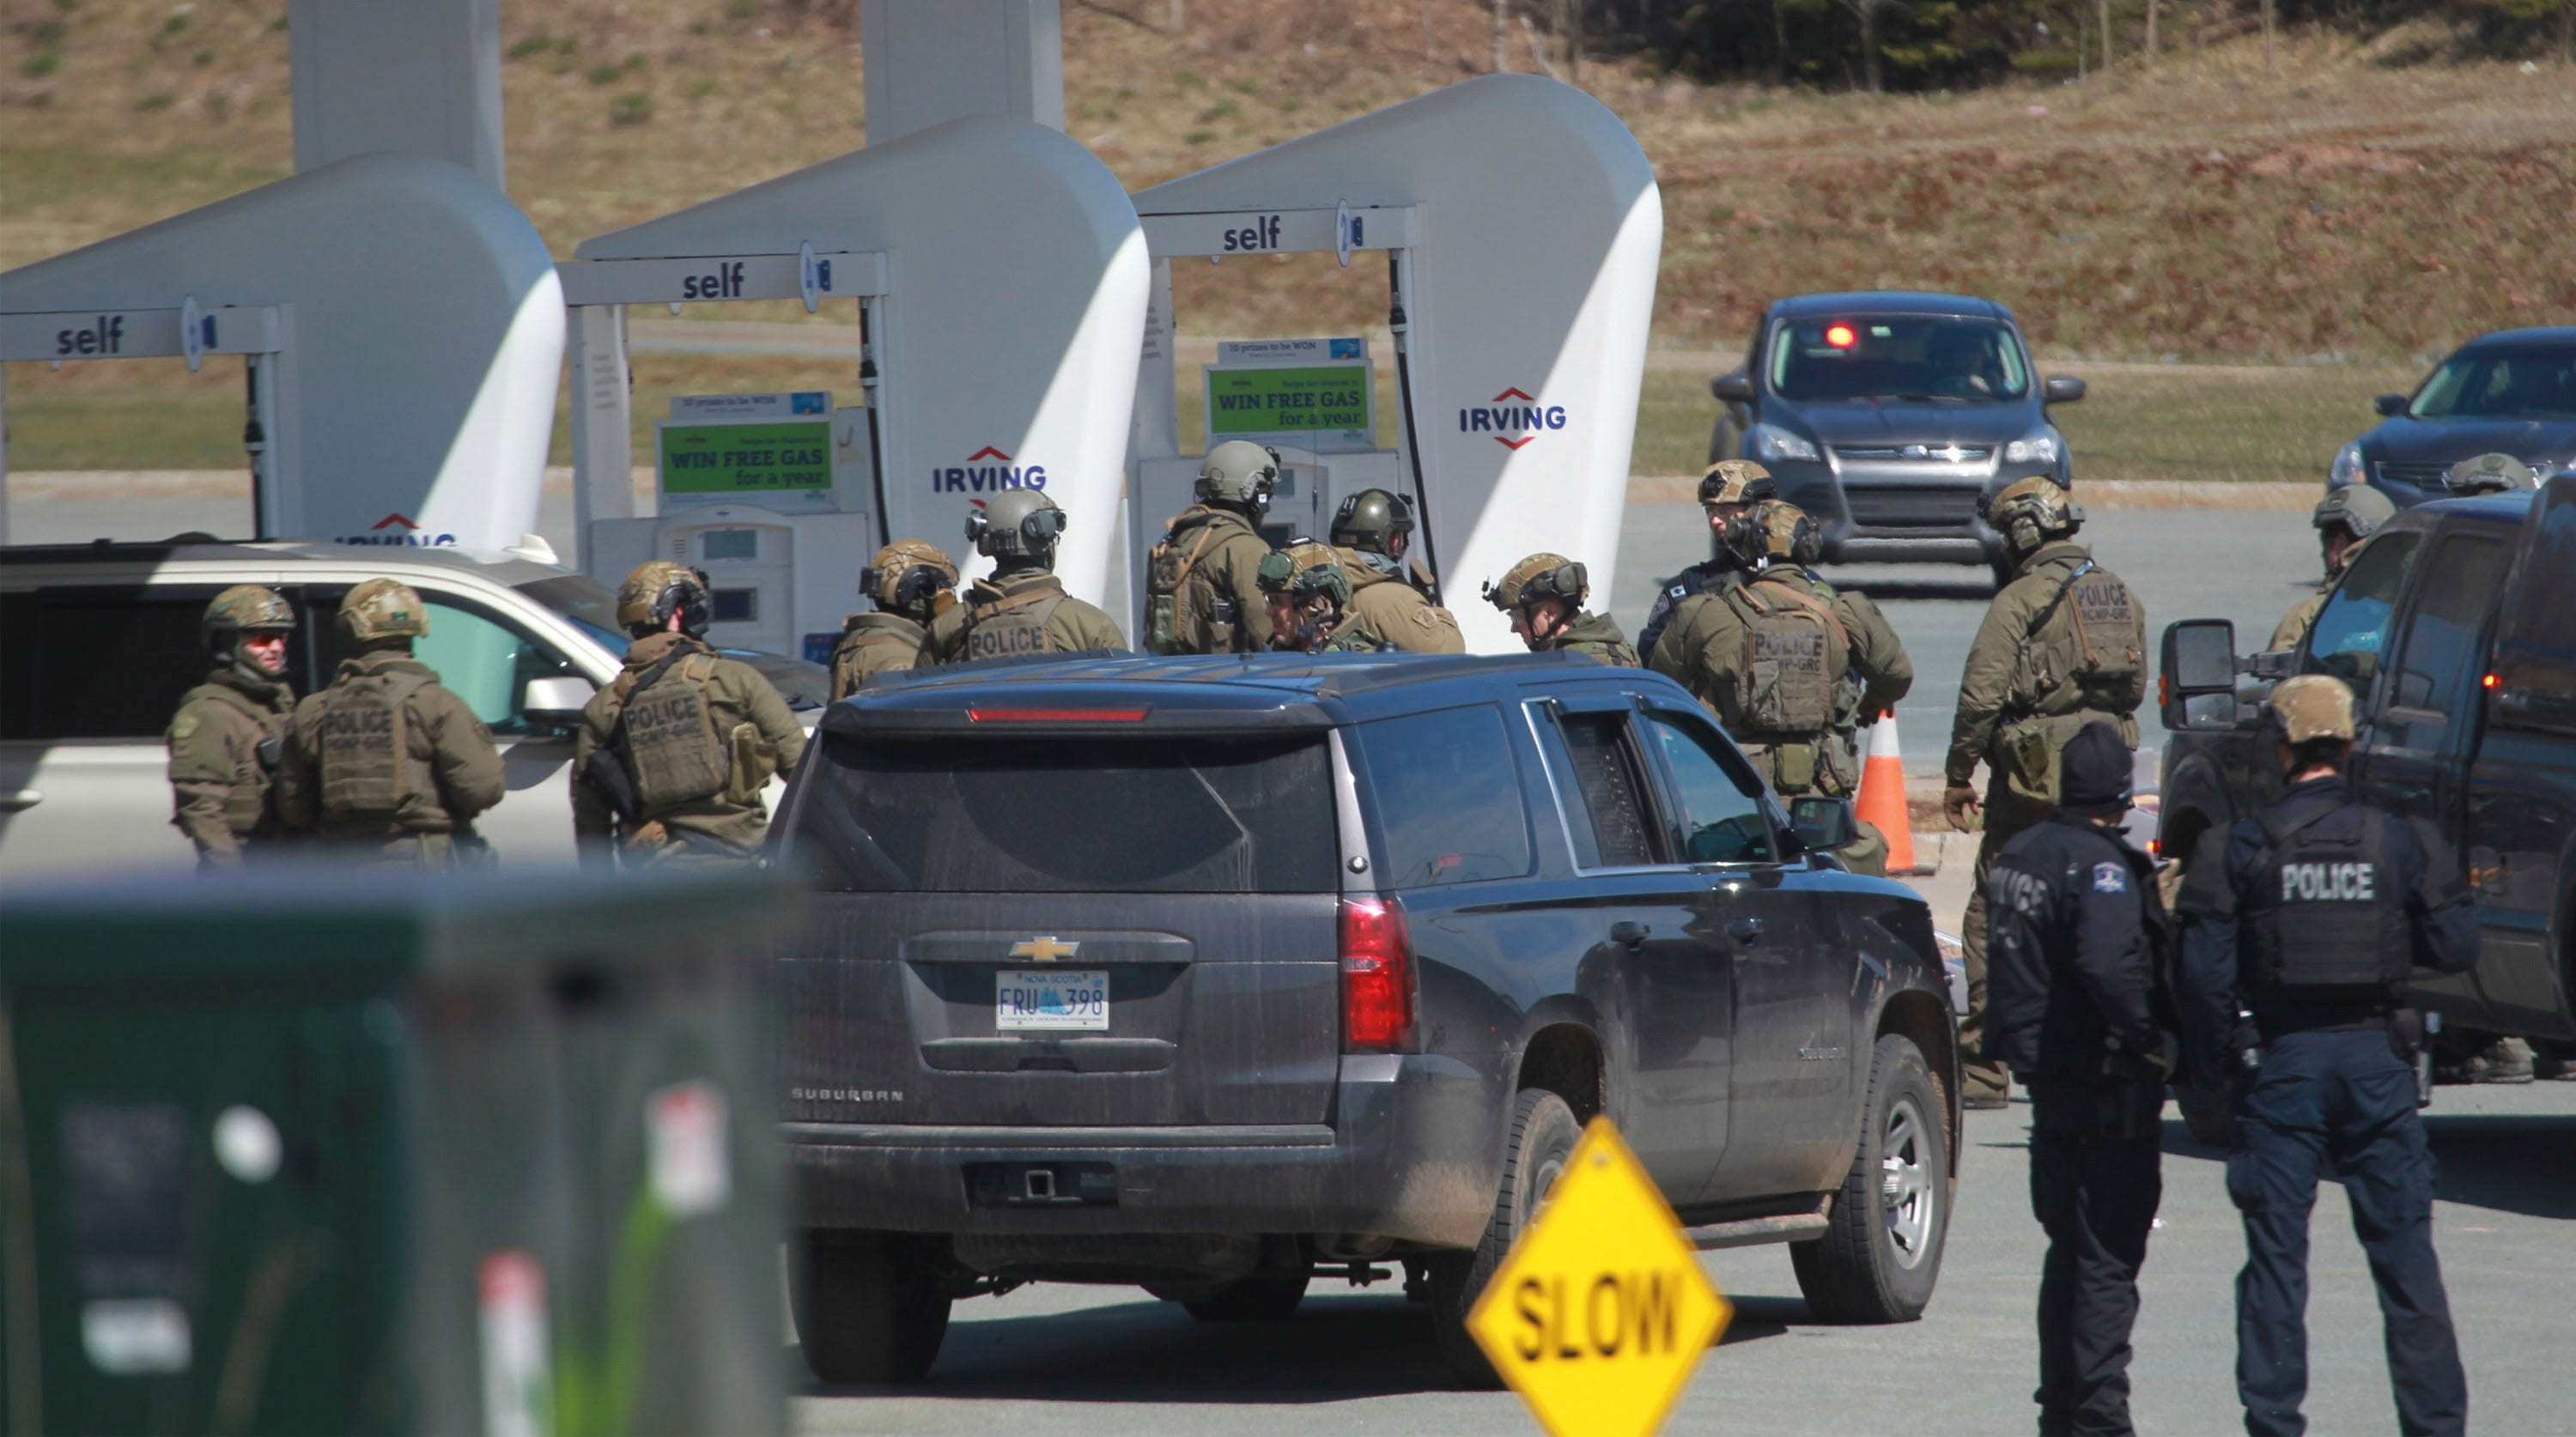 At least 18 people are dead in Canada shooting rampage that spanned 12 hours